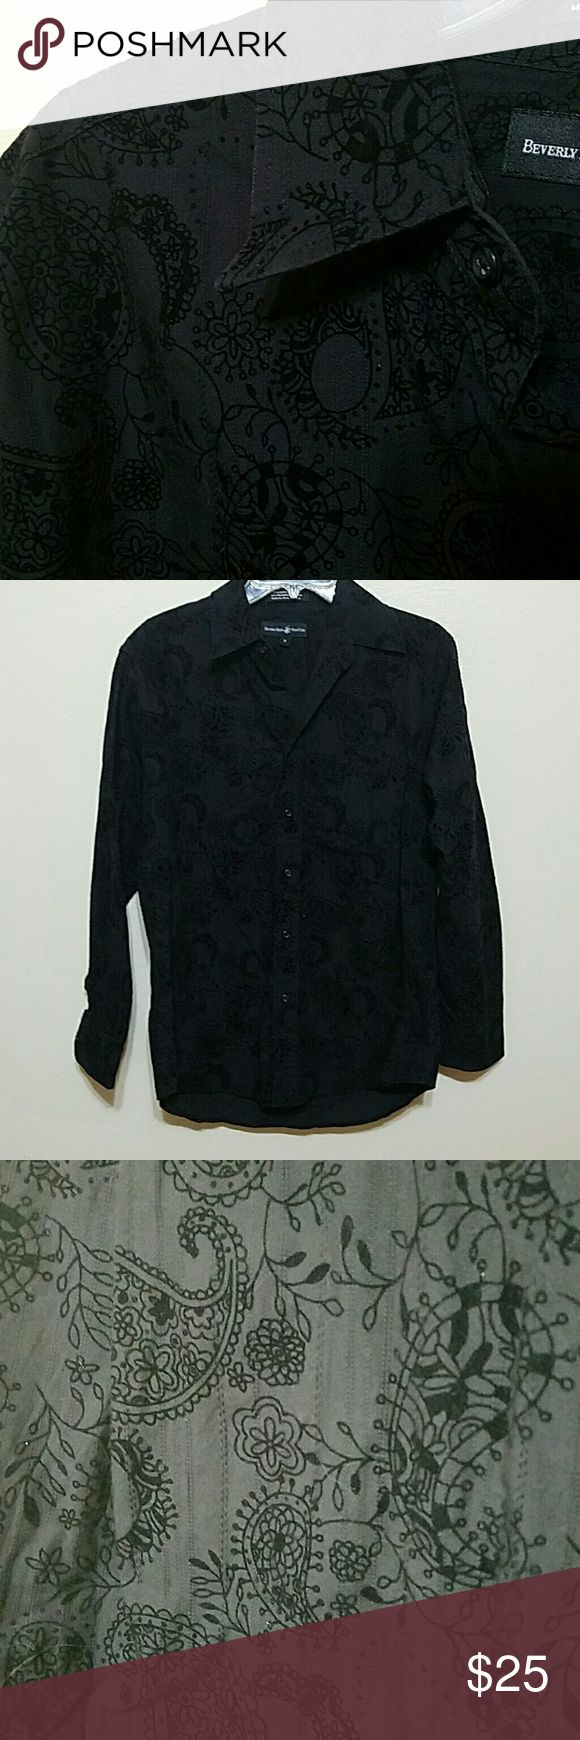 SALE Black on black paisley print Classy shirt with black paisley design on black.  Slightly textured.  55% cotton, 45% polyester.   In excellent condition. Beverly Hills Polo Club  Shirts Dress Shirts